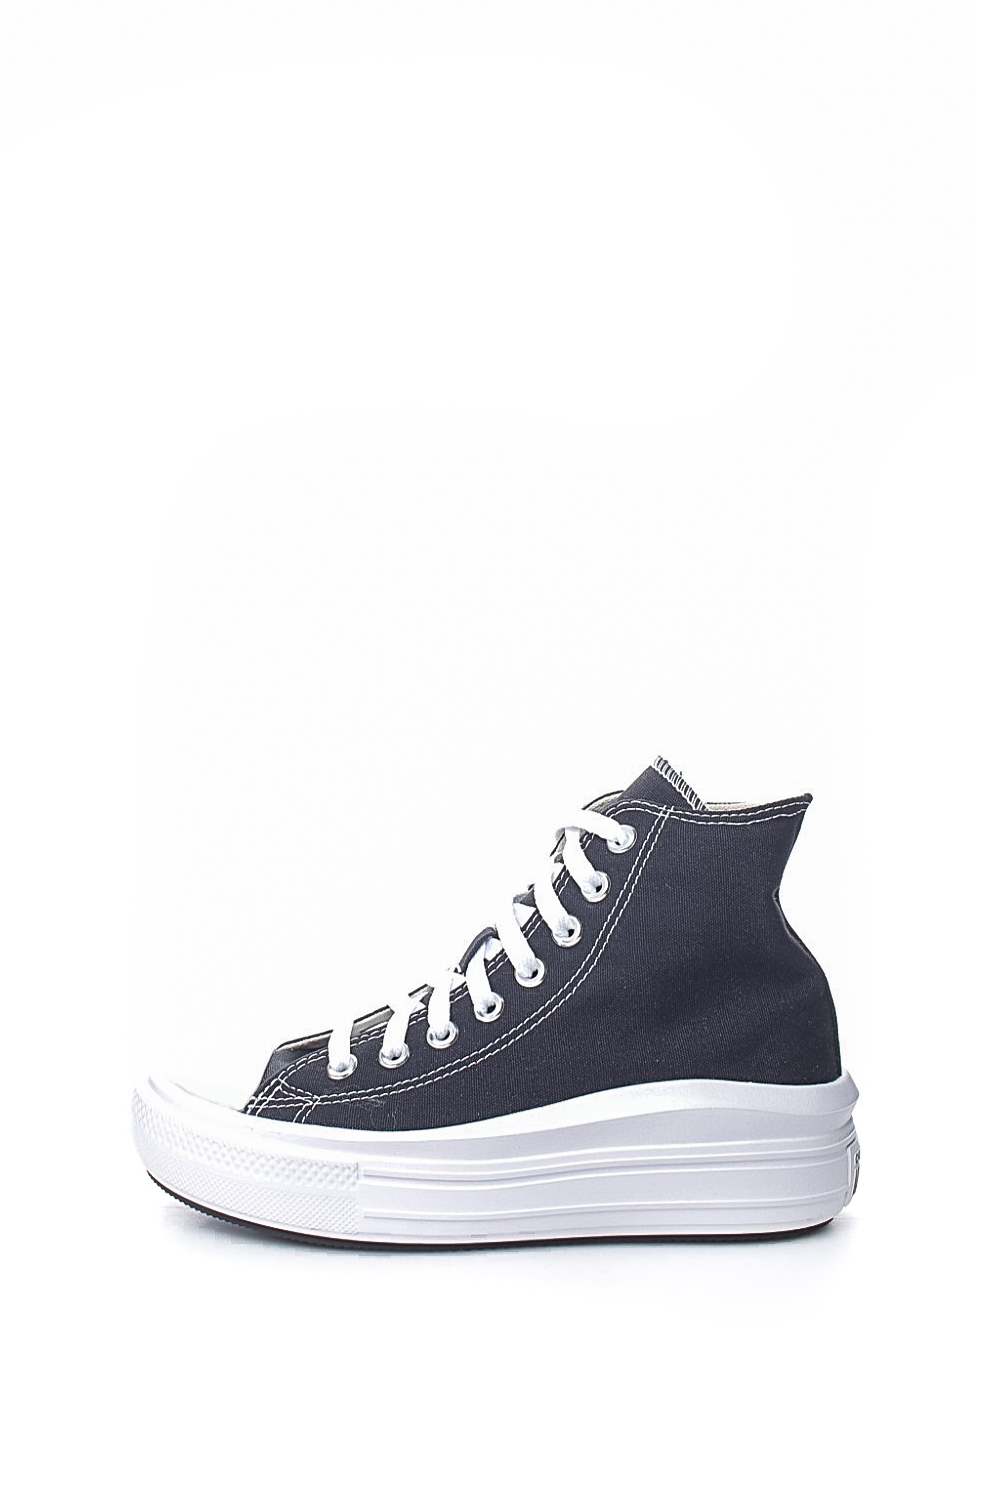 CONVERSE – Γυναικεία ψηλά sneakers CONVERSE Chuck Taylor All Star Move μαύρα